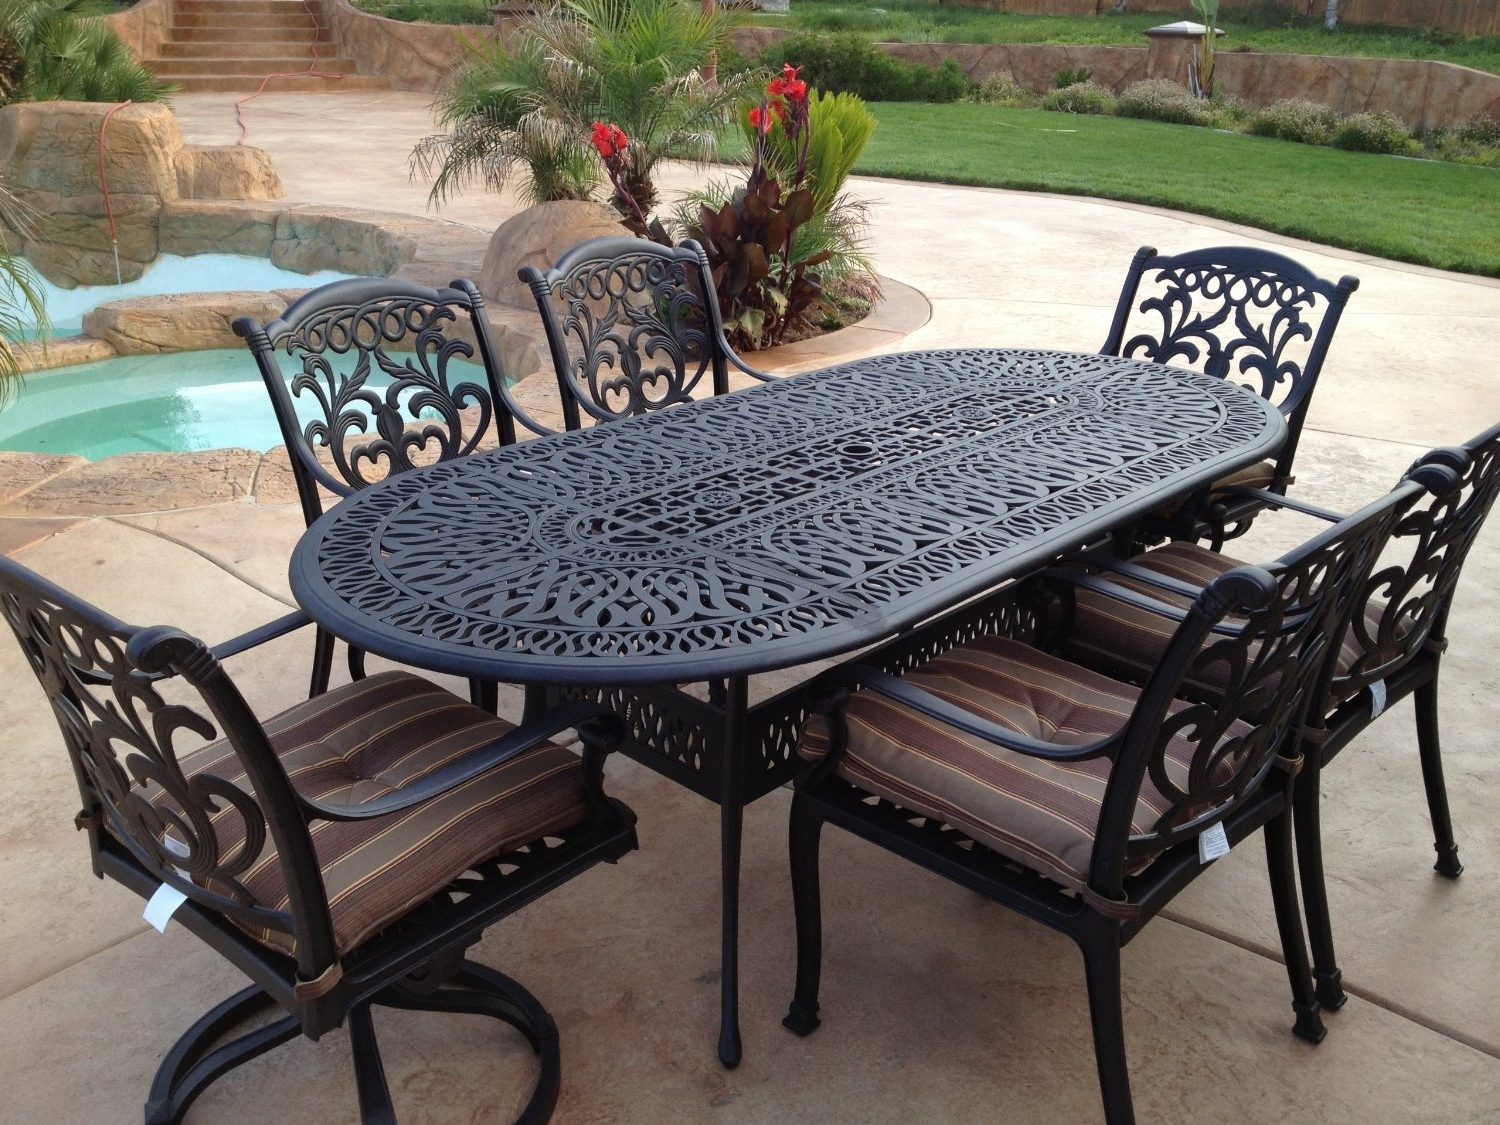 Fashionable Elegant Patio Furniture Metal 27 Hampton Bay Fire Pit Sets Inside Wrought Iron Patio Conversation Sets (View 8 of 15)